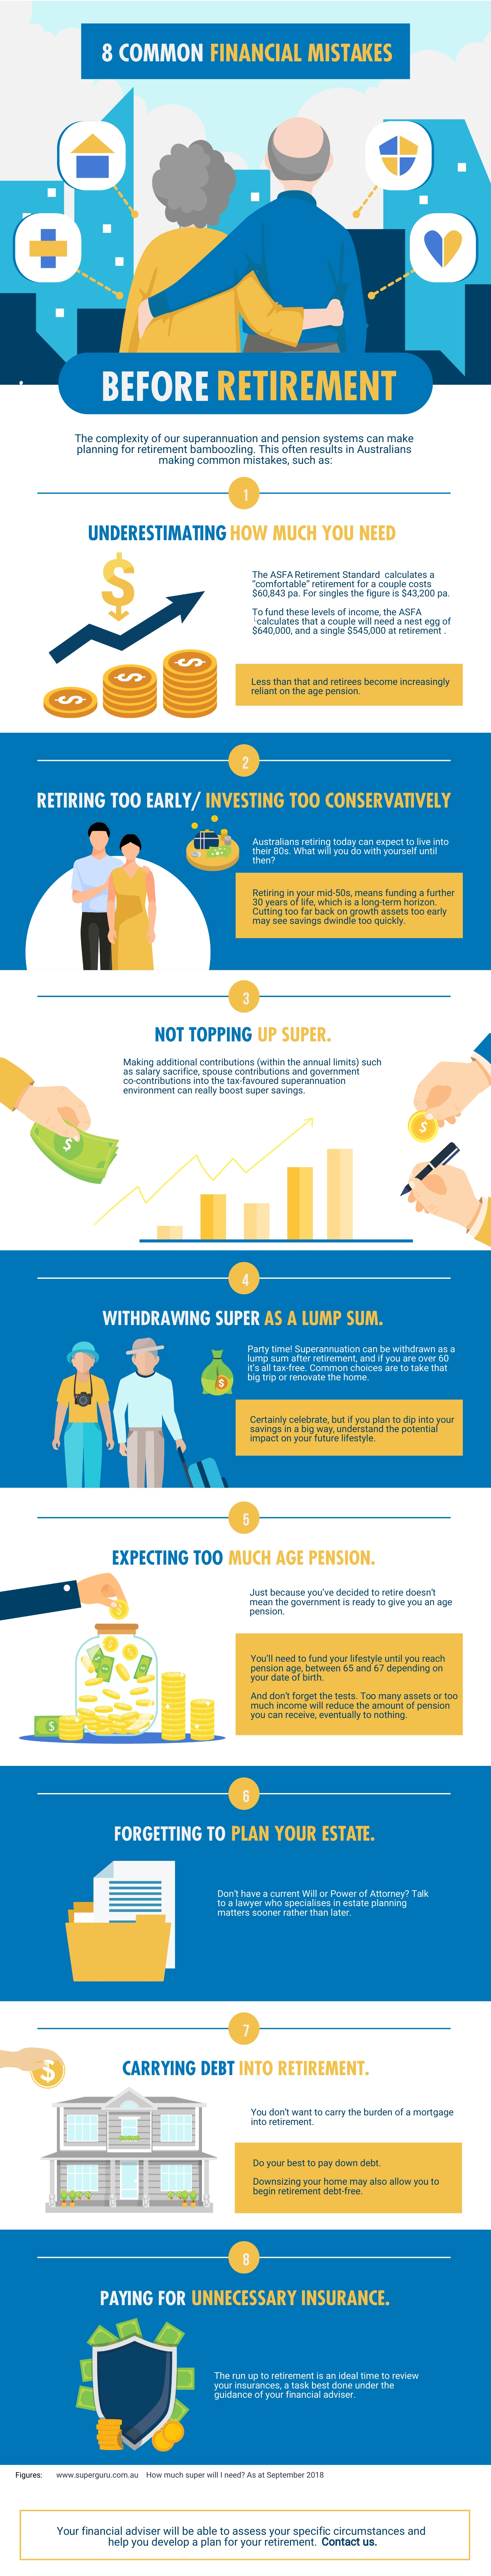 Infographic on 8 common mistakes before retirement